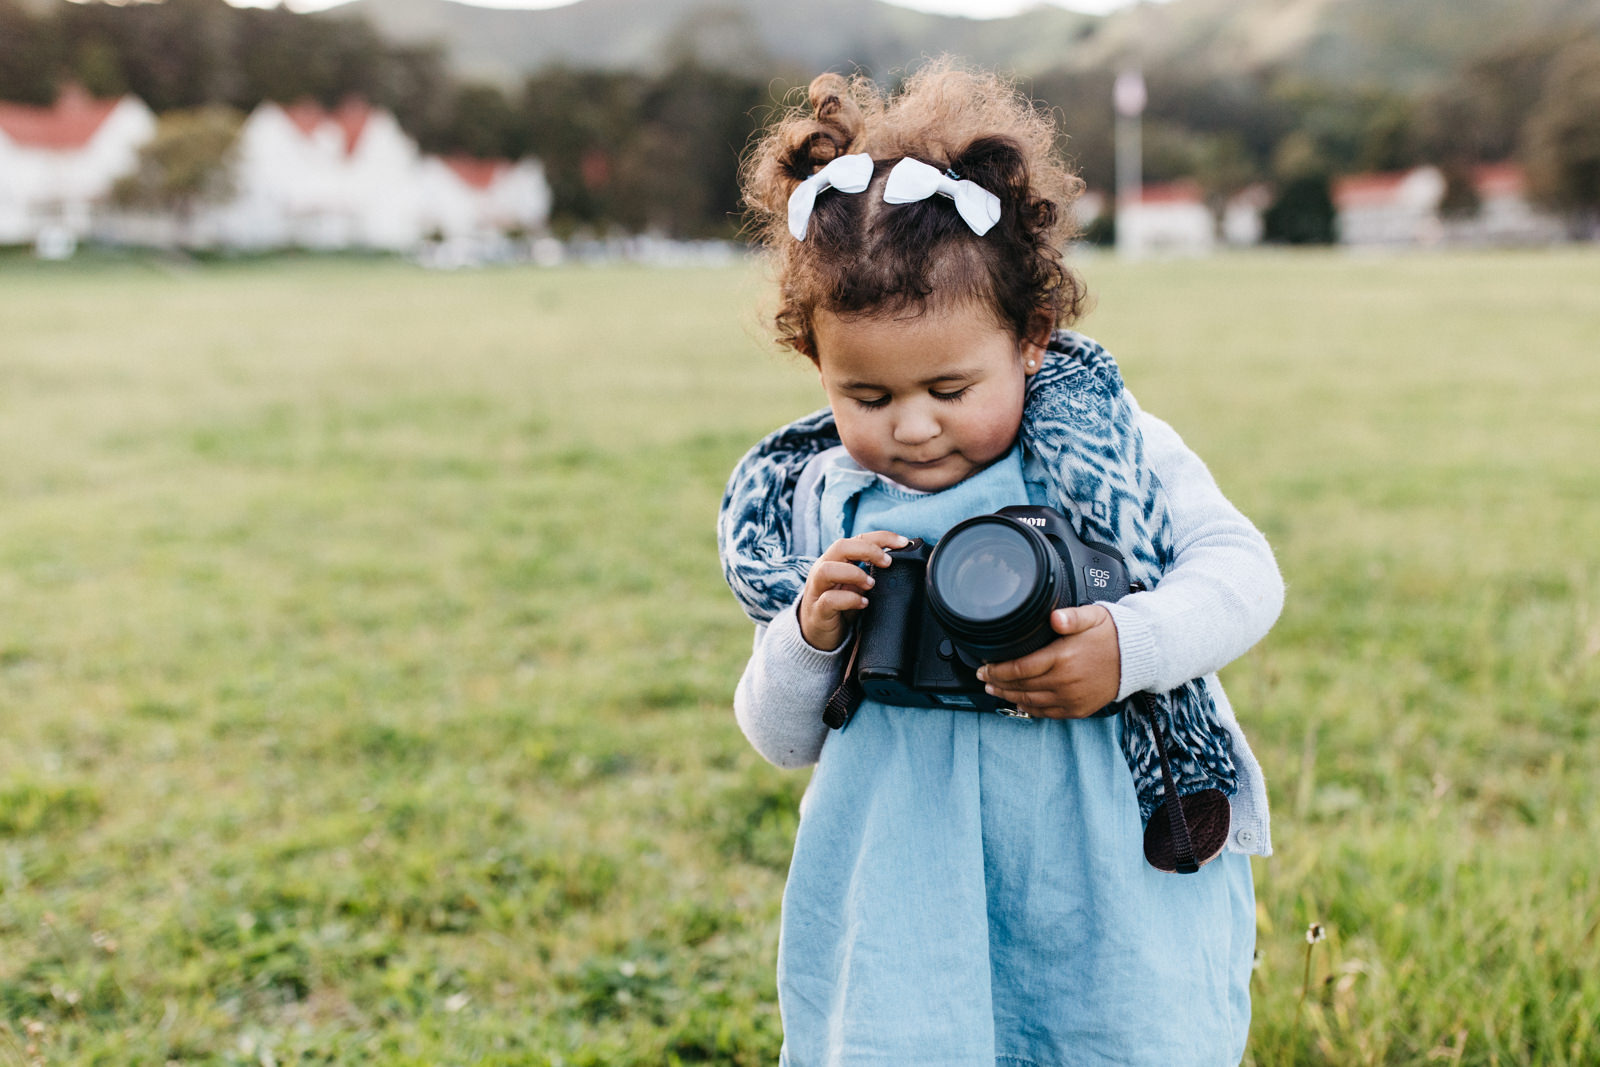 Little girl holding big camera - Photographing shy kids